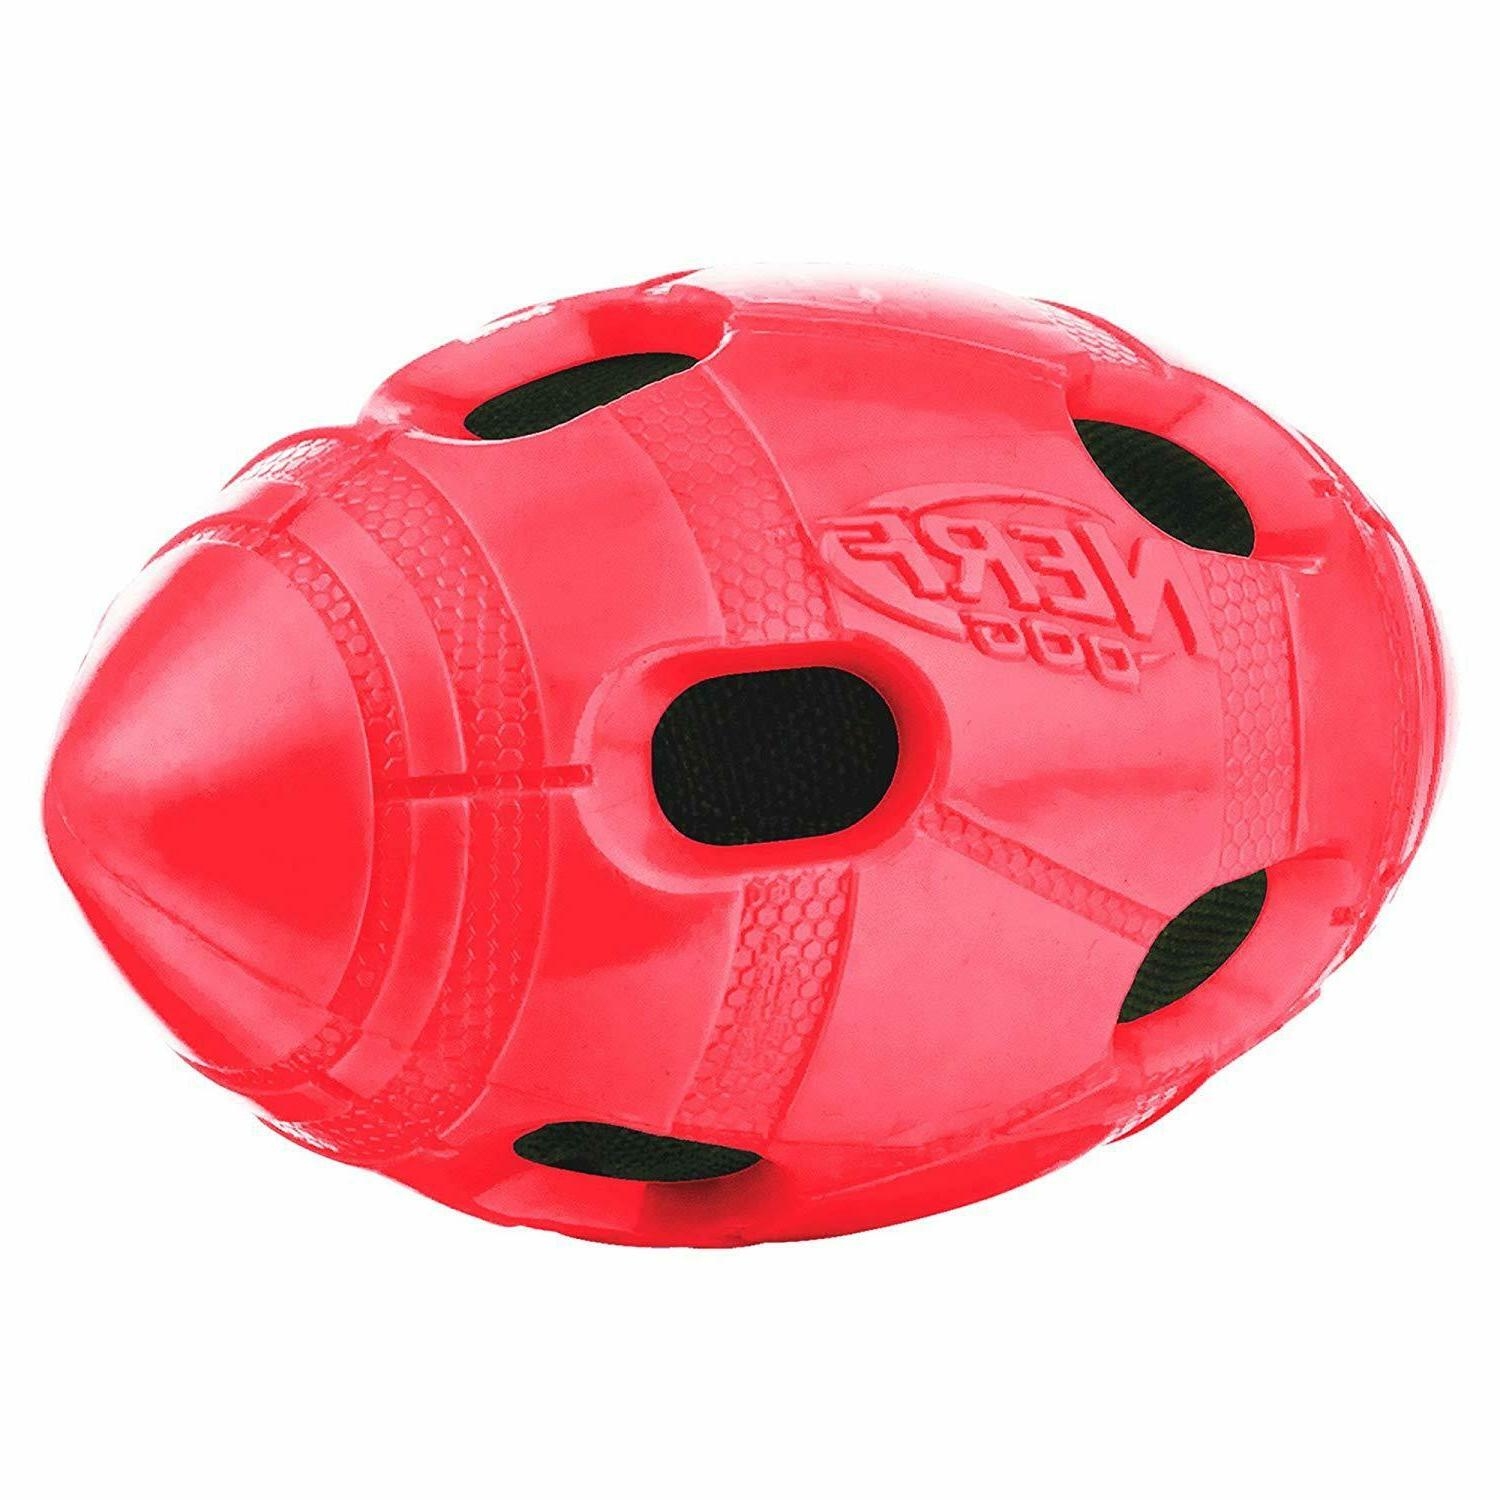 6in tpr bash crunch football red drool